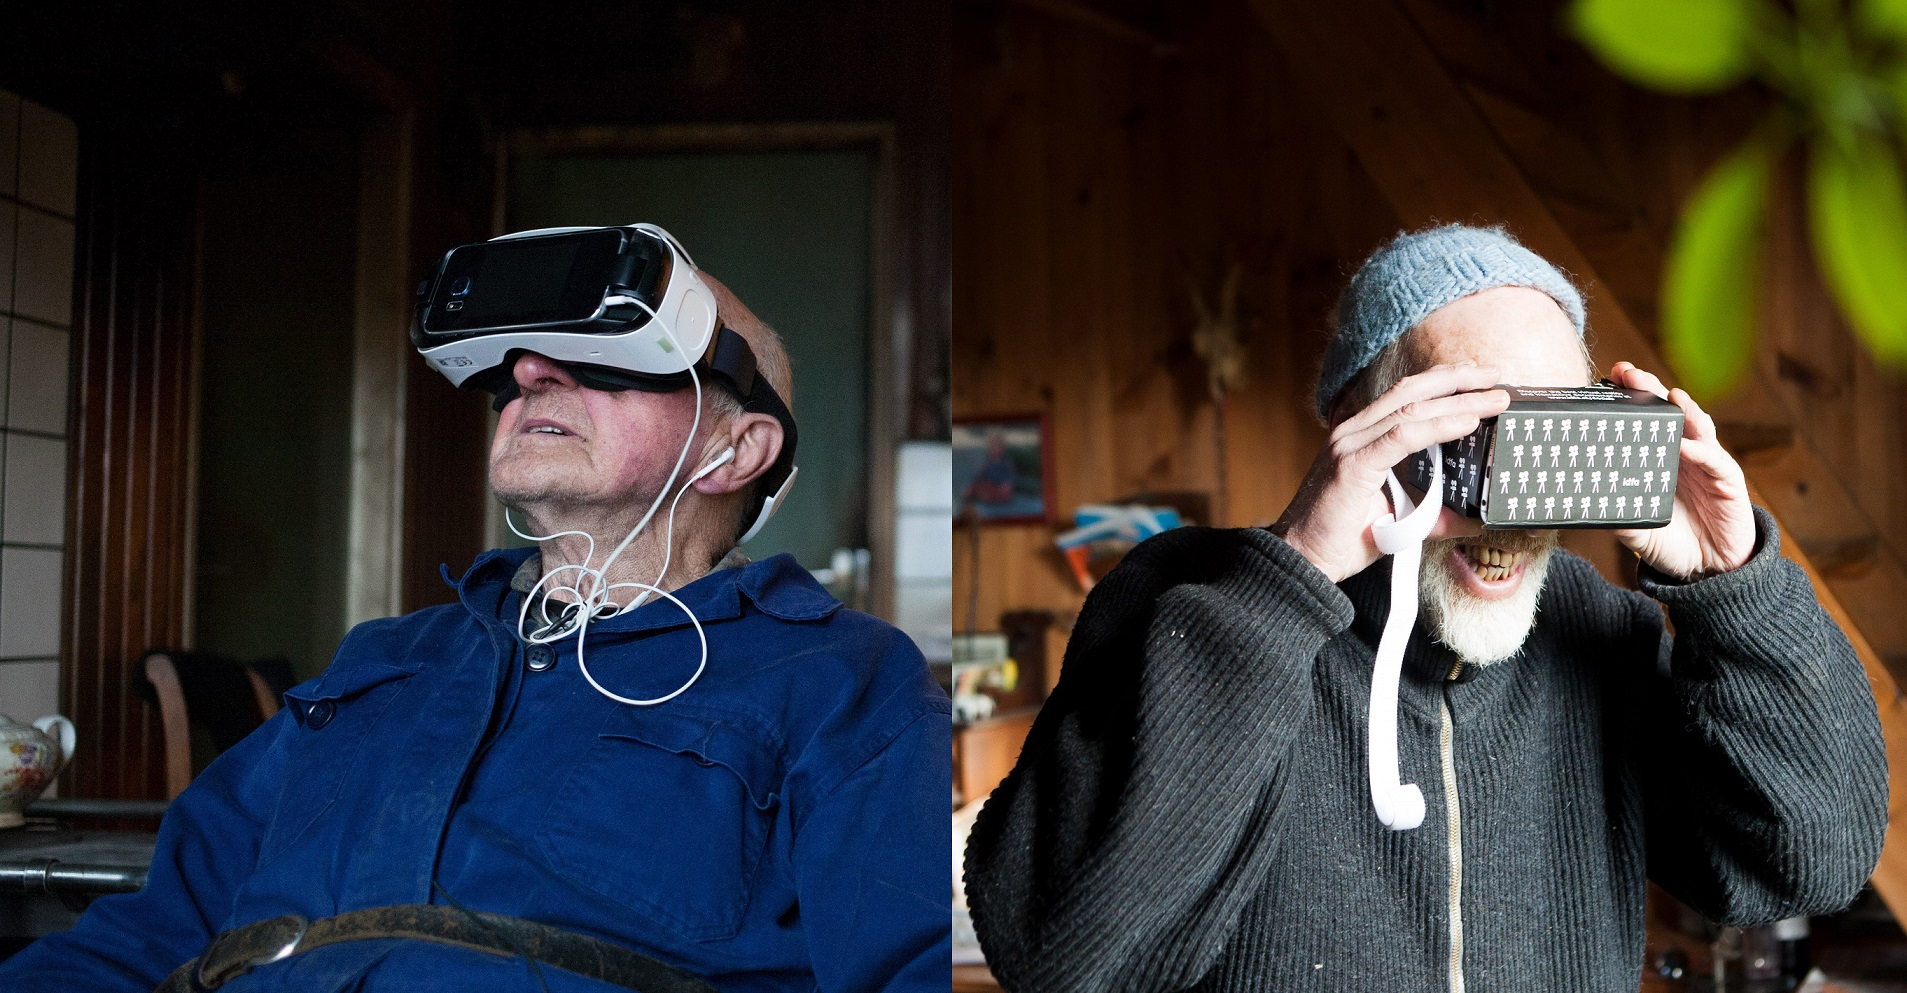 'The Last Chair' is a VR documentary about the final stages of life.